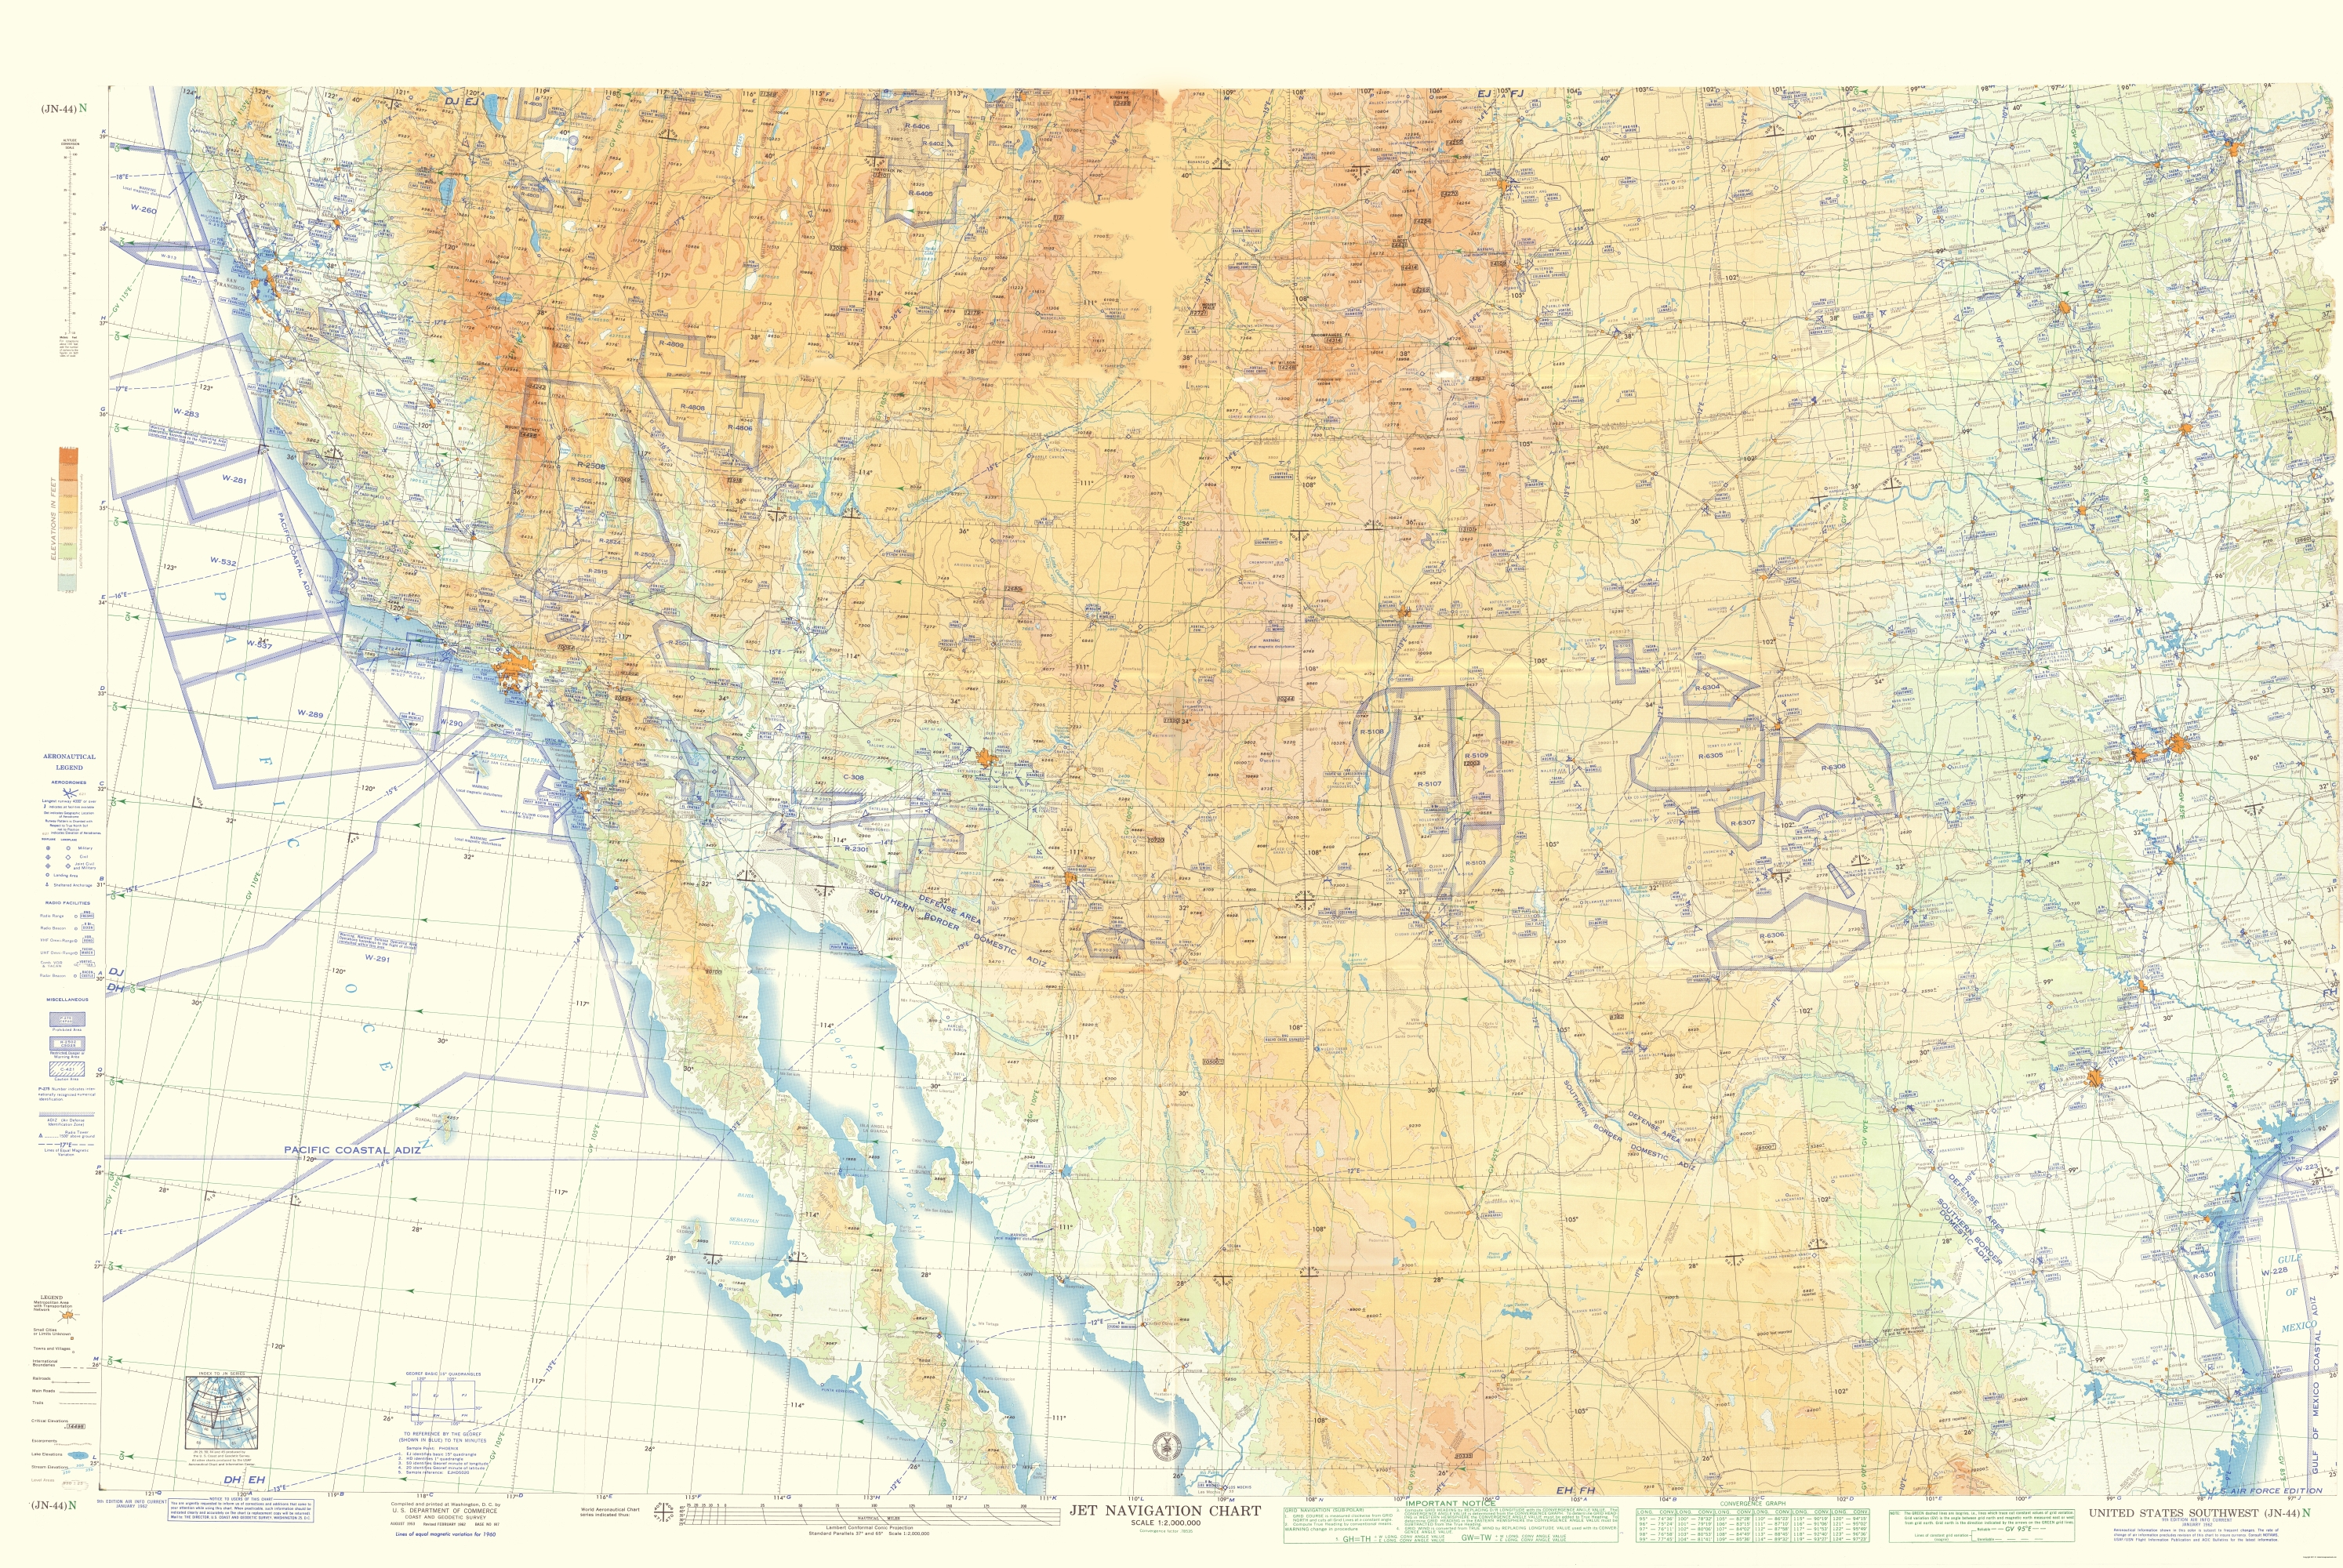 Old Topographical Map Southwest United States 1962